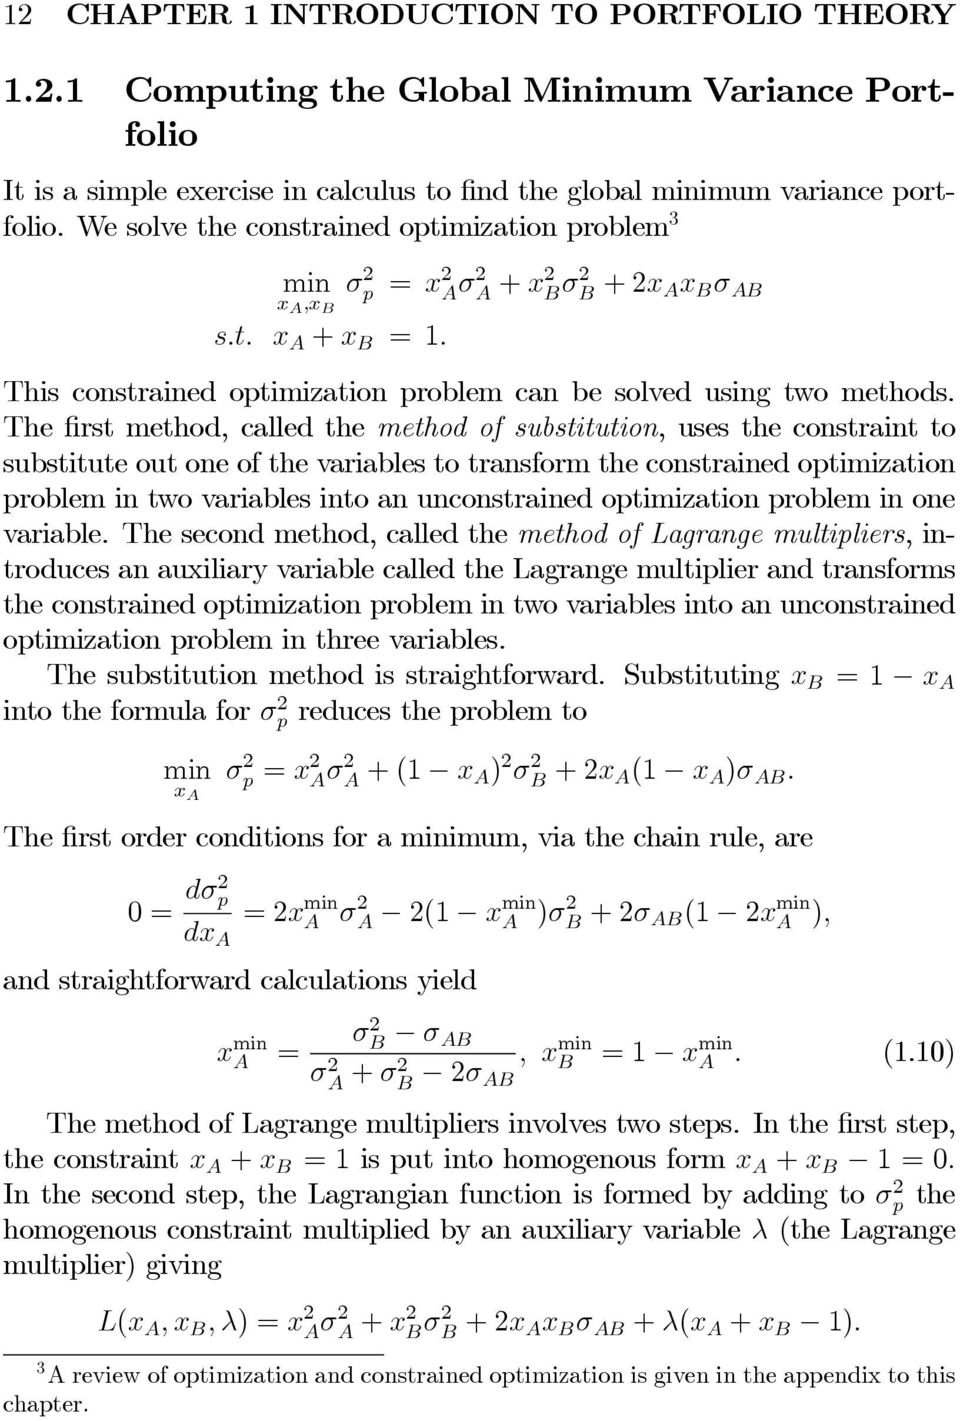 The first method, called the method of substitution, uses the constraint to substitute out one of the variables to transform the constrained optimization problem in two variables into an